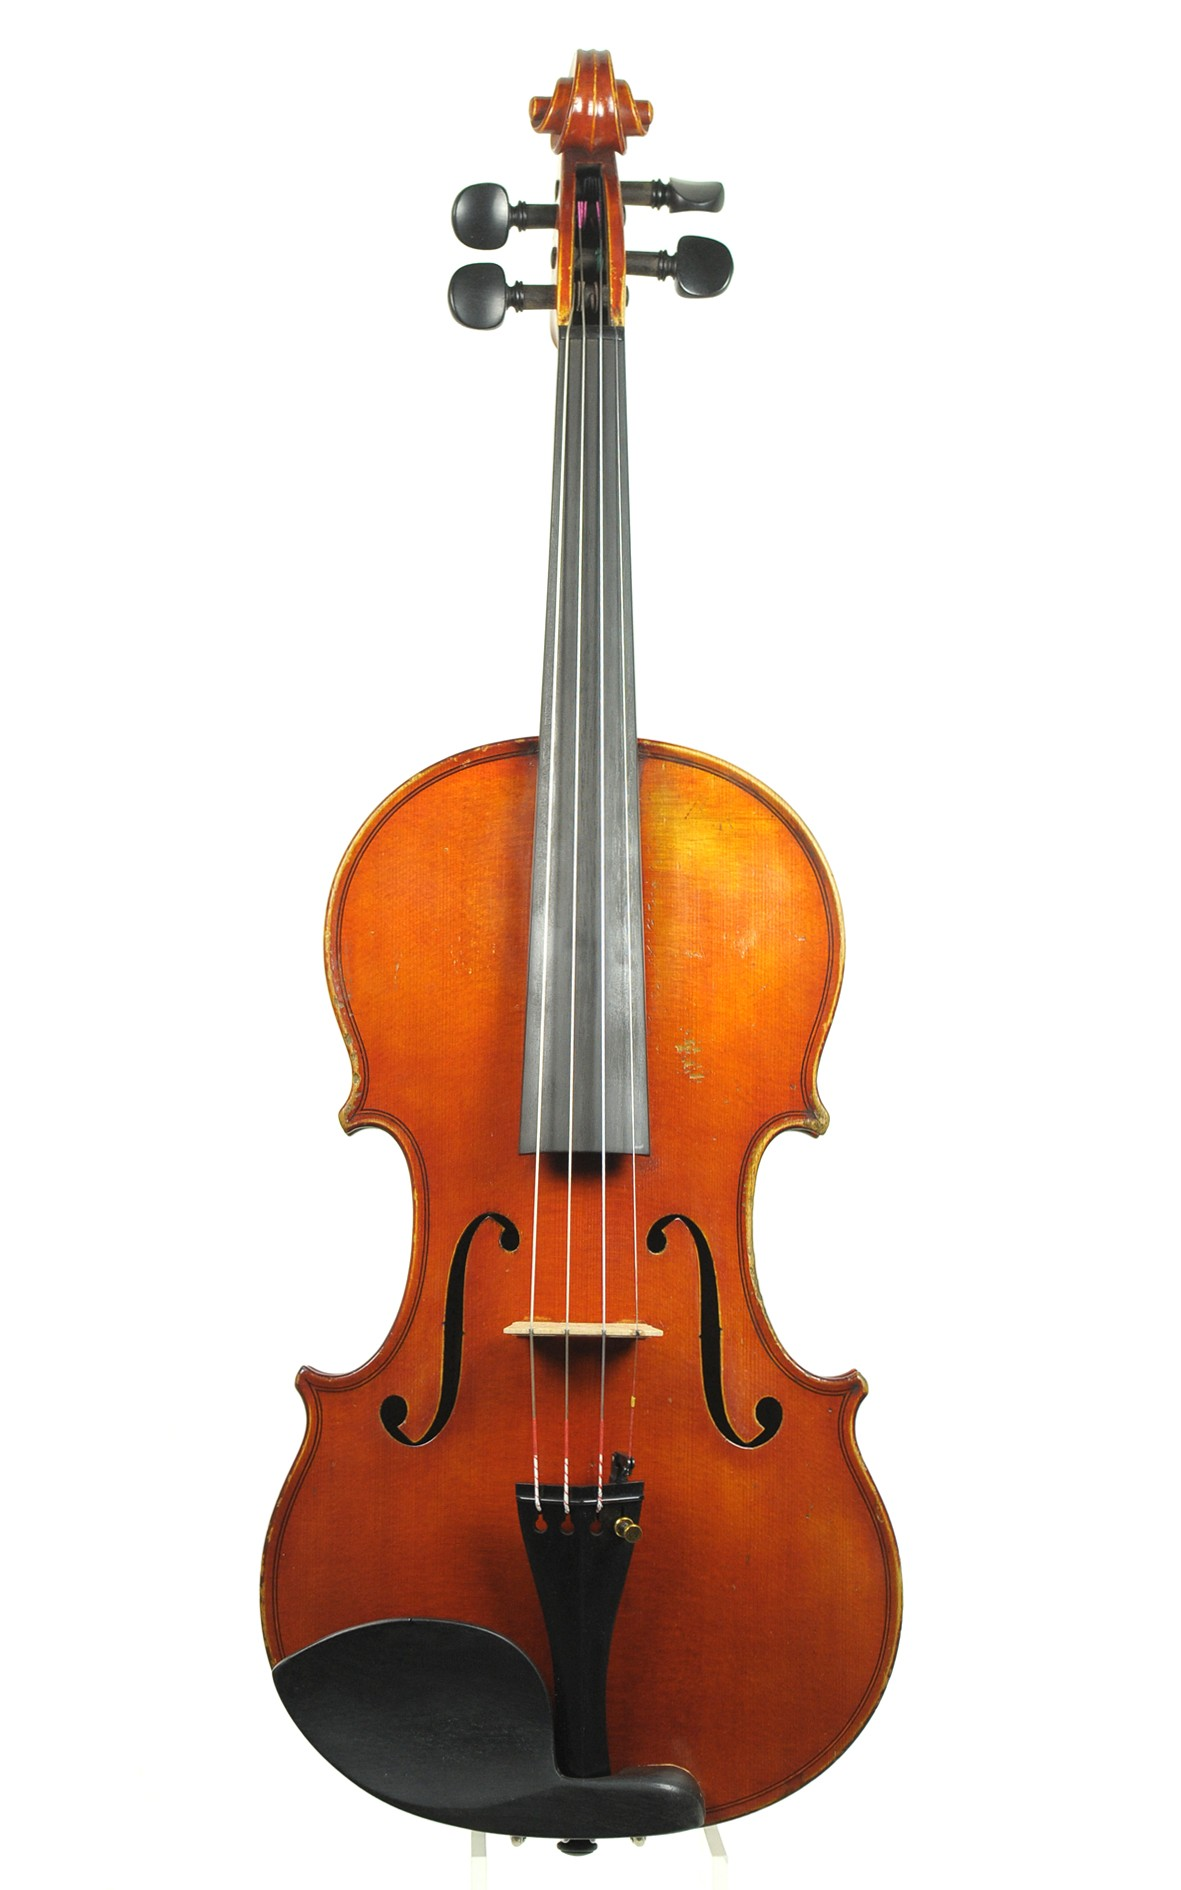 Czech violin by Alois Bittner, 1930 - top view